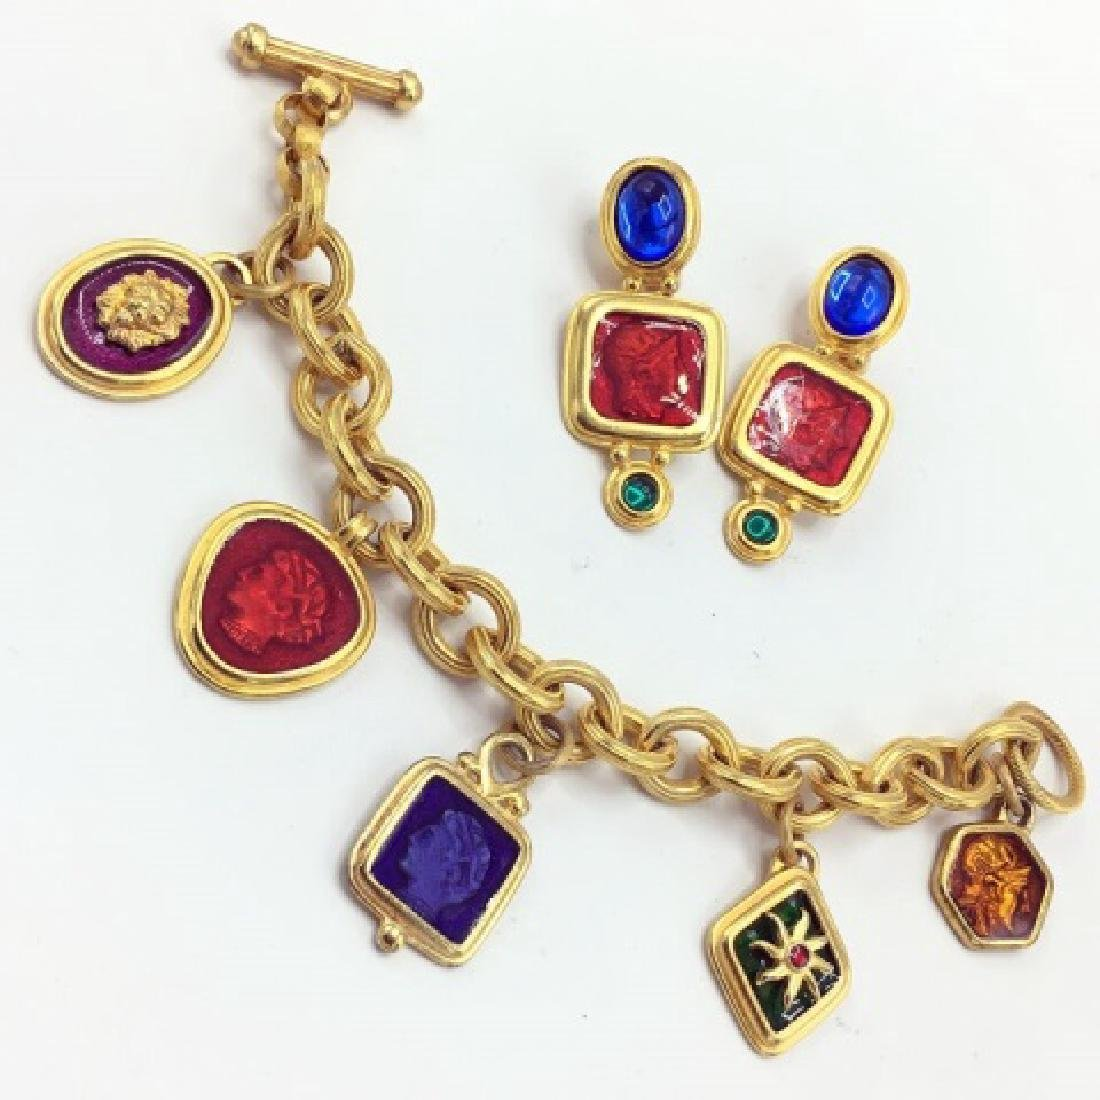 Vintage Robert Rose Roman Inspired Costume Jewelry - 3